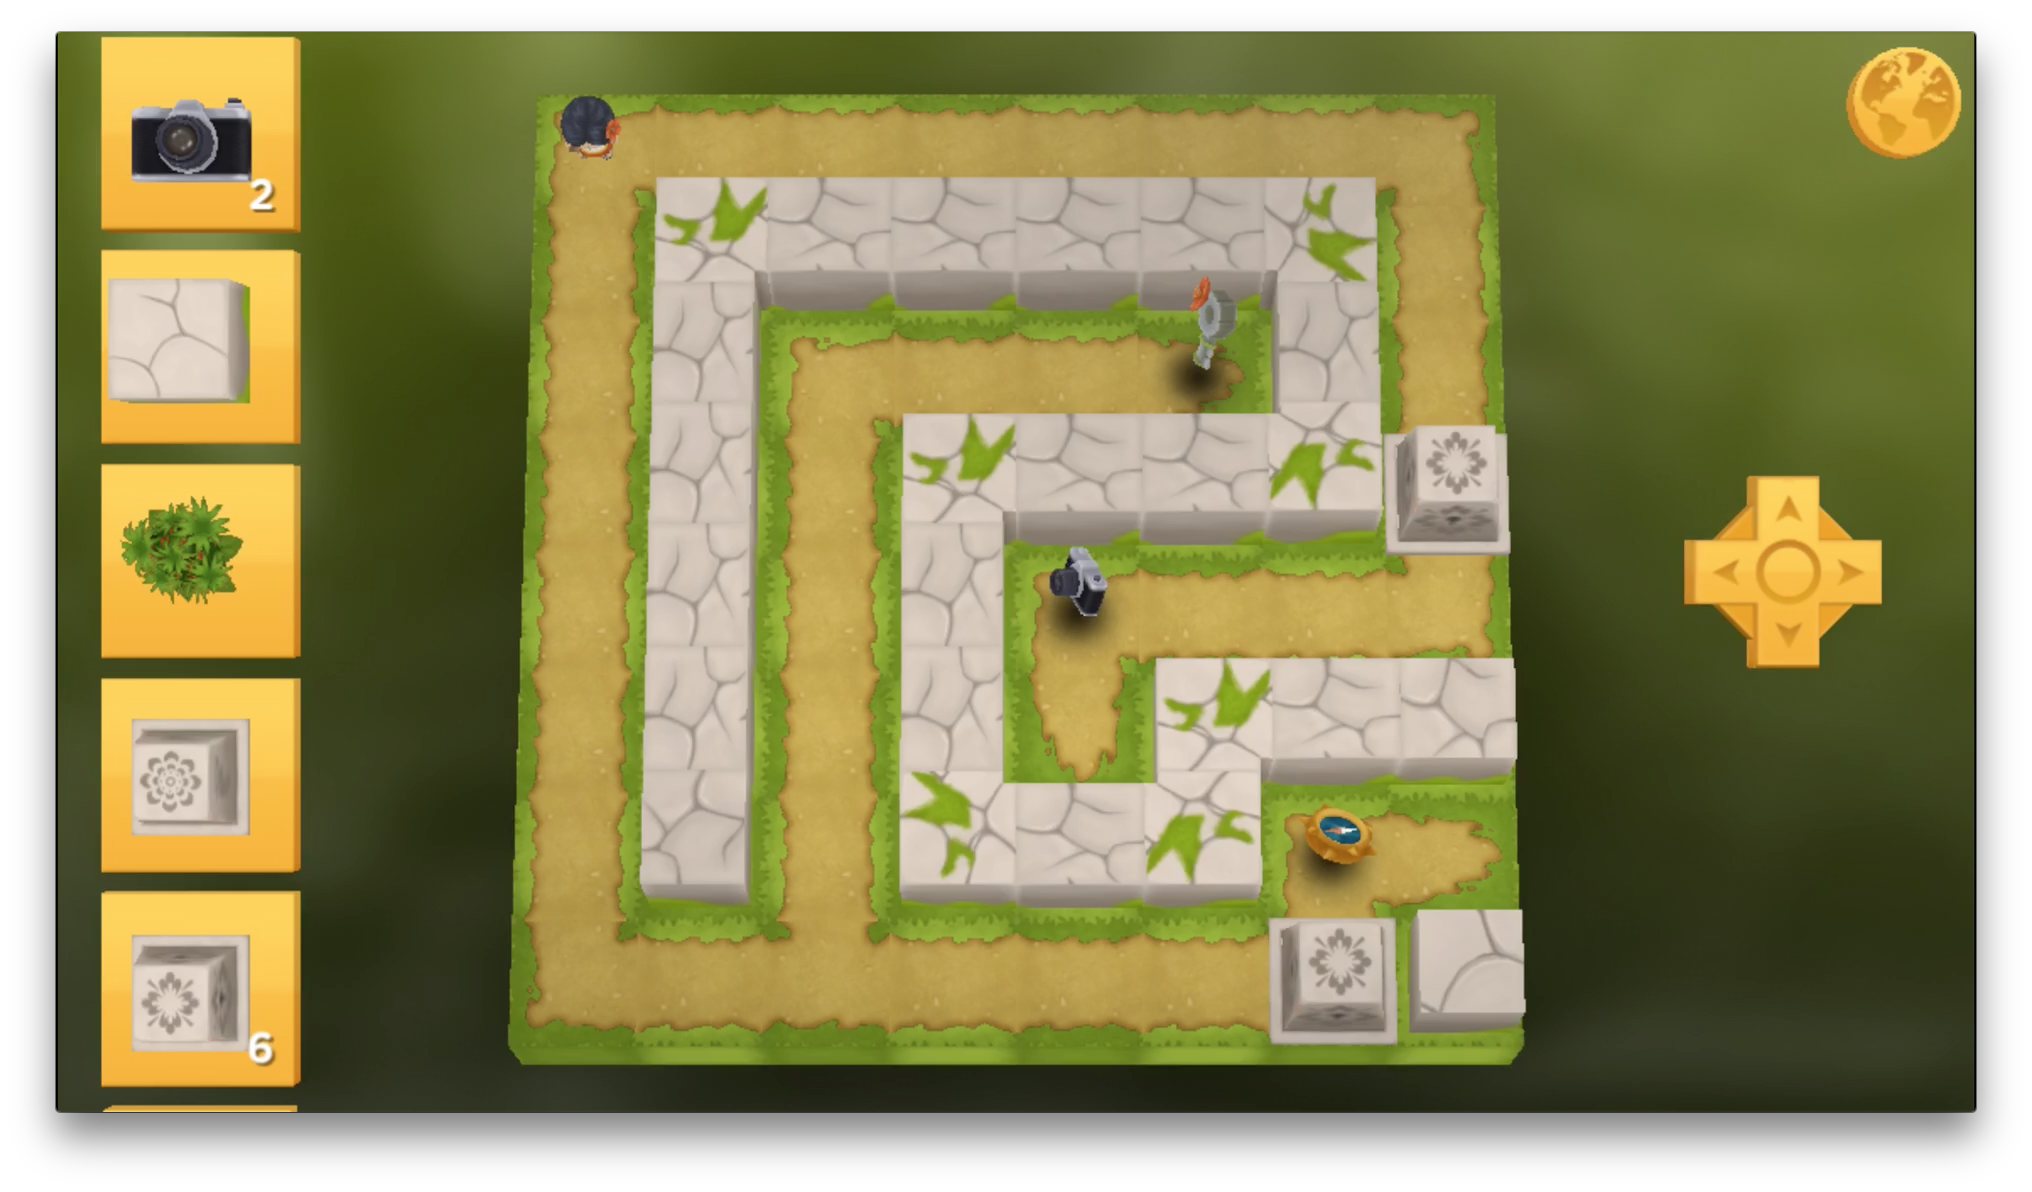 The general layout of the puzzle